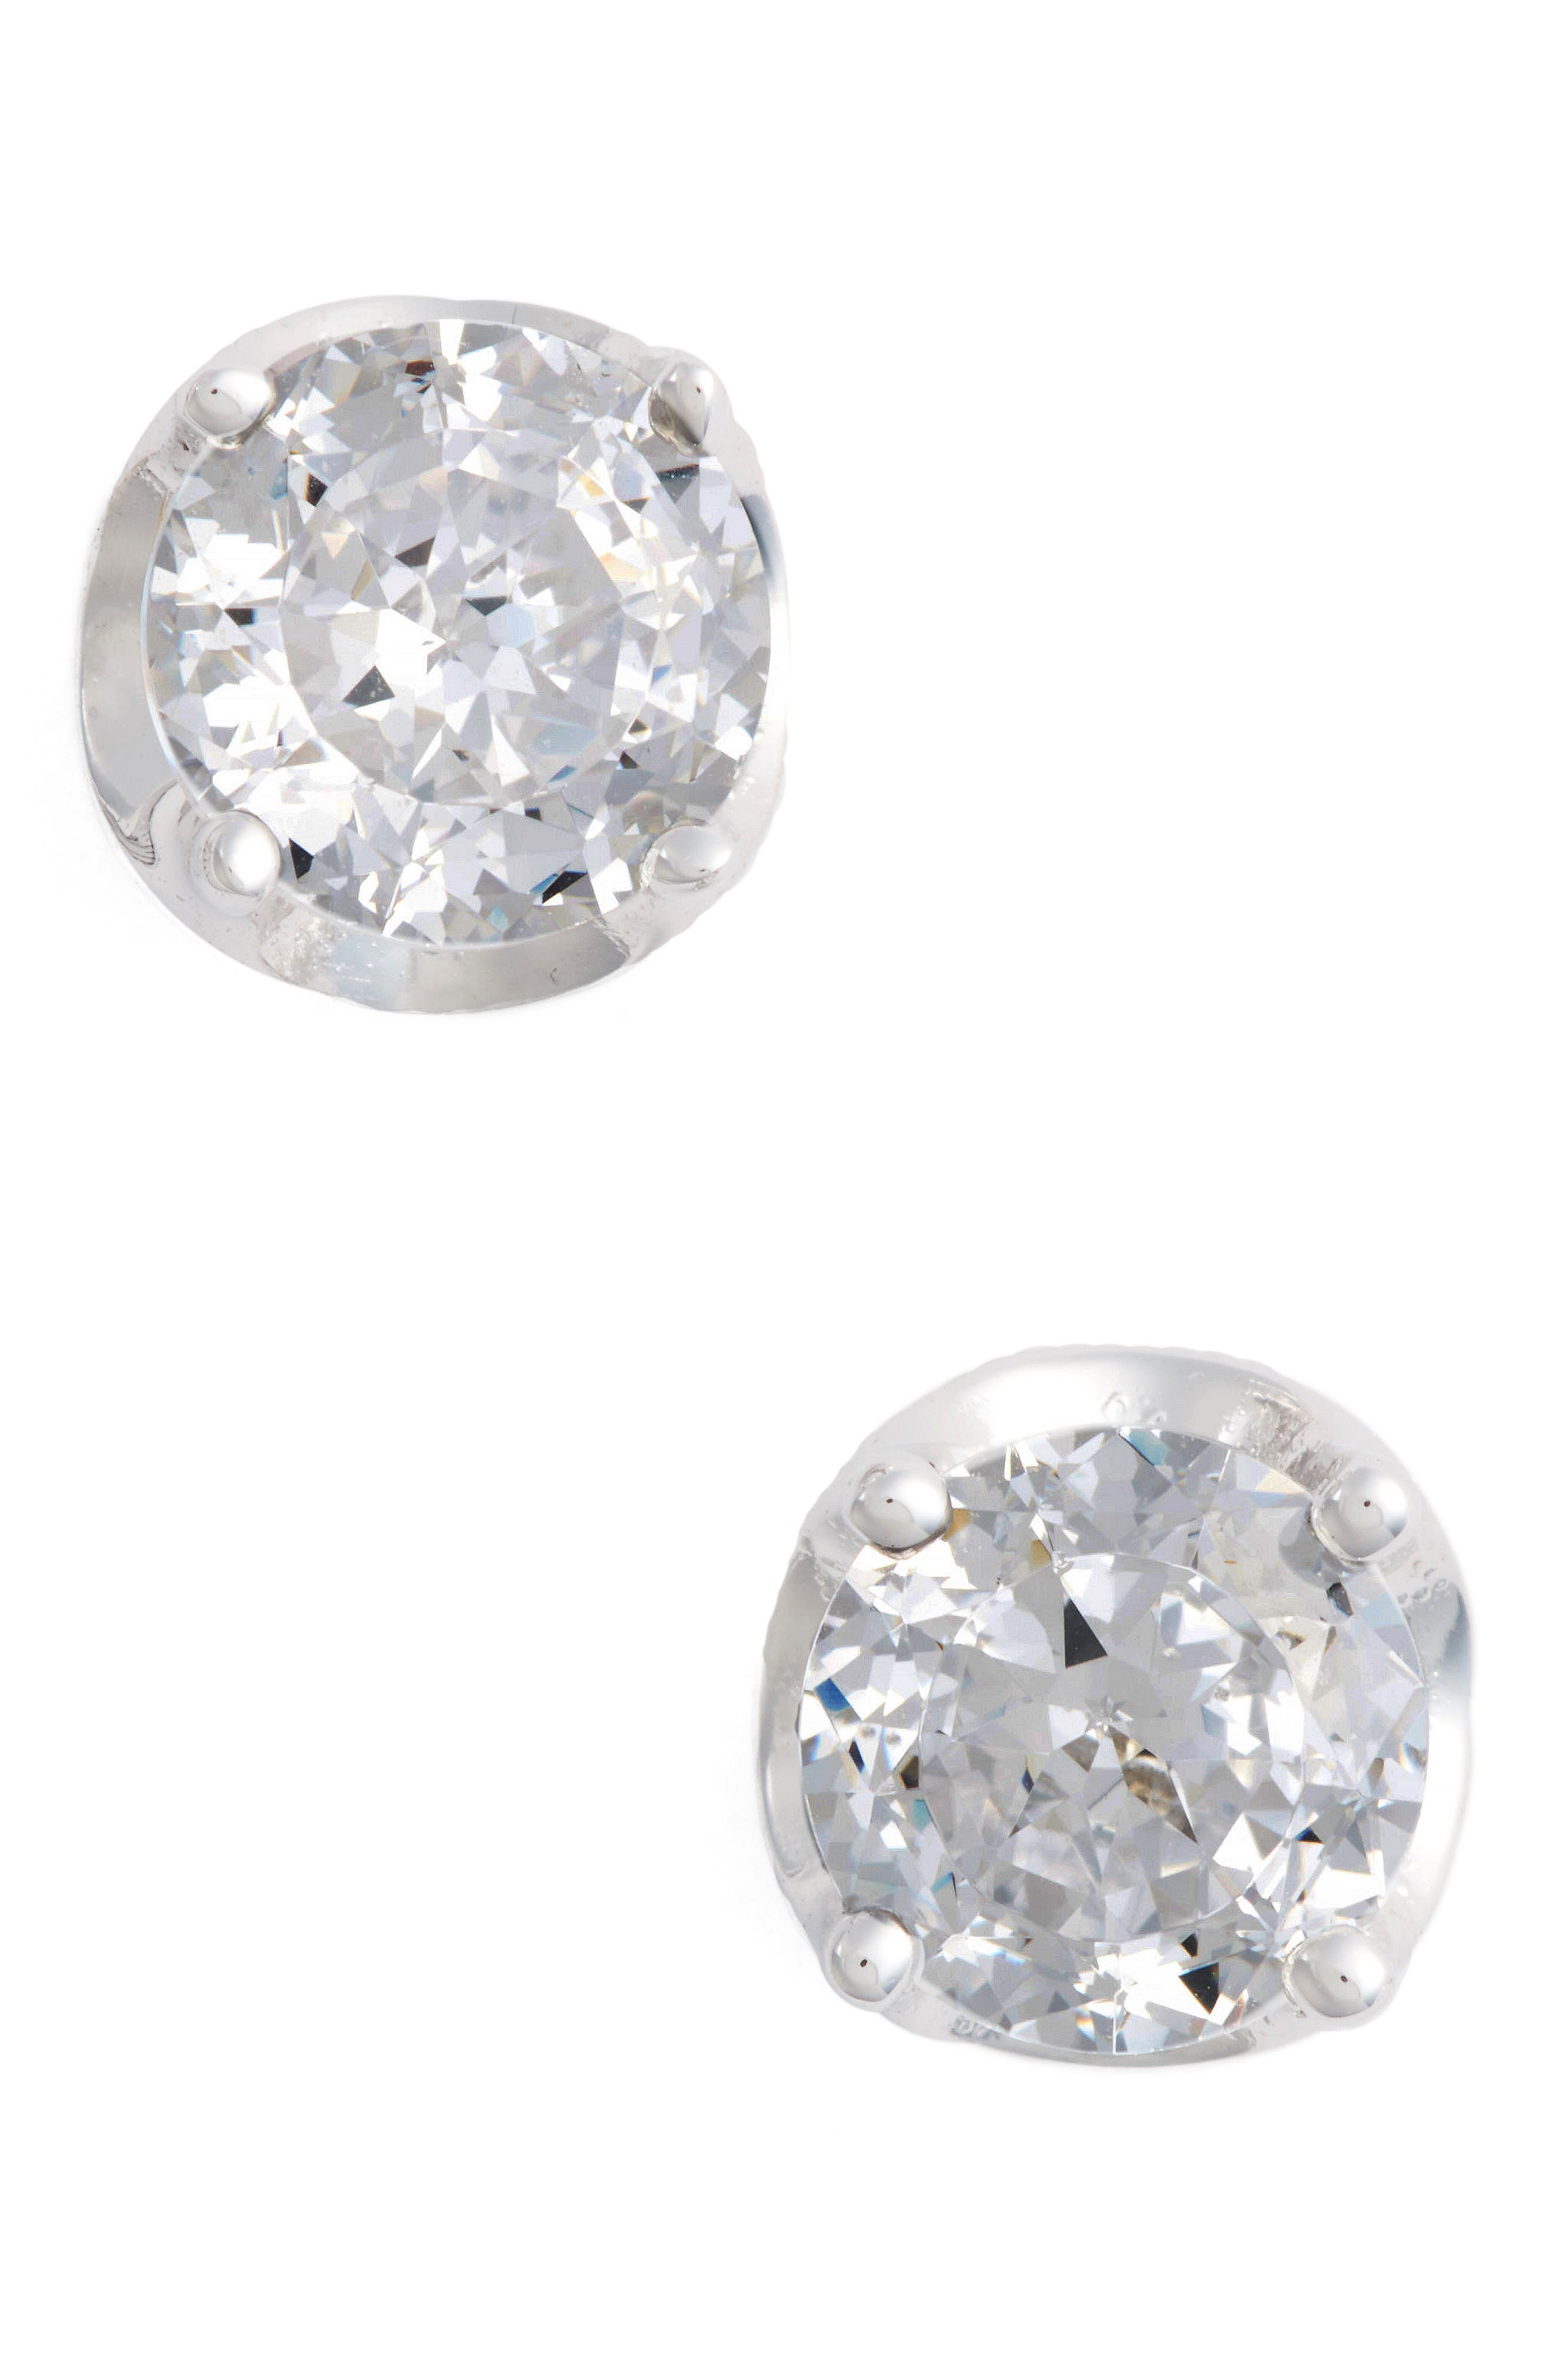 Simulated Diamond Stud Earrings,                         Main,                         color, Silver/ Clear